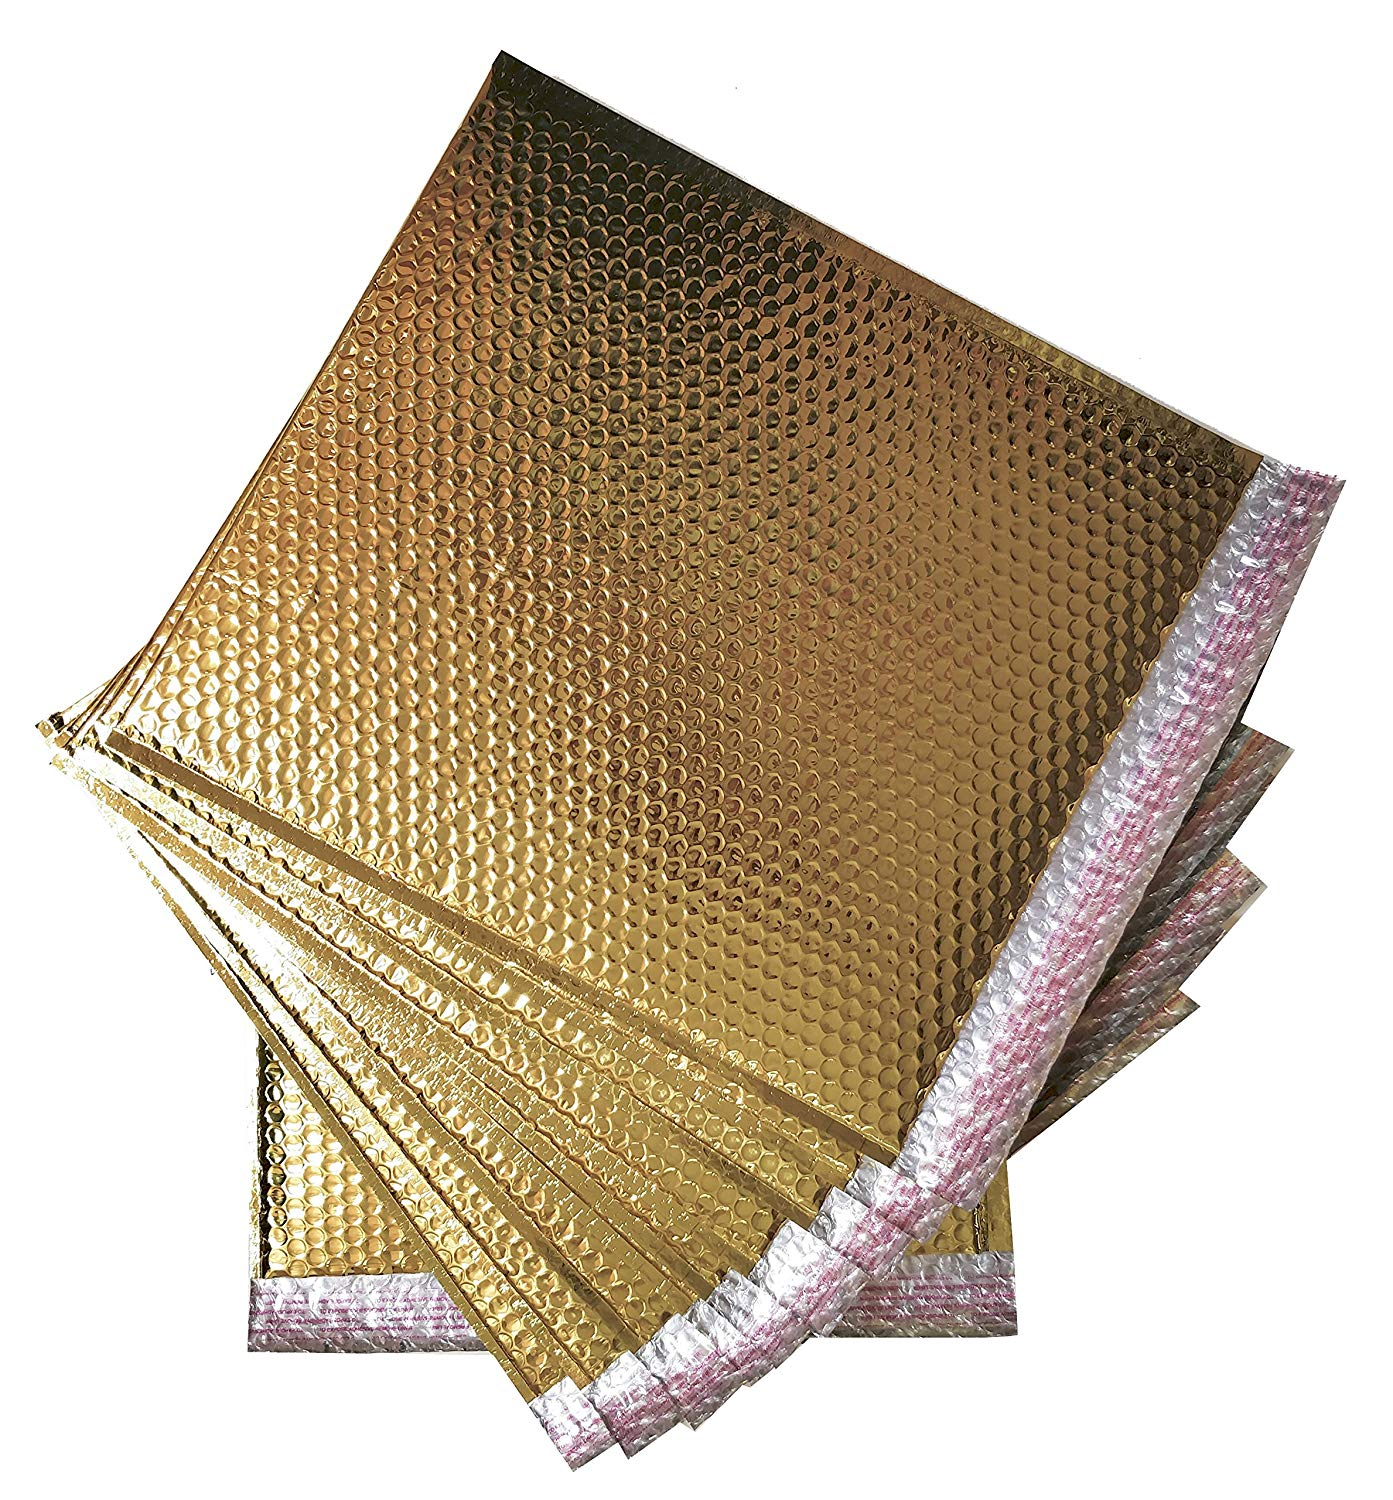 10 Pack Metallic Bubble mailers 7.5 x 11. Gold padded envelopes 7 1/2 x 11. Glamour bubble mailers Peel and Seal. Padded mailing envelopes for shipping, packing, packaging.